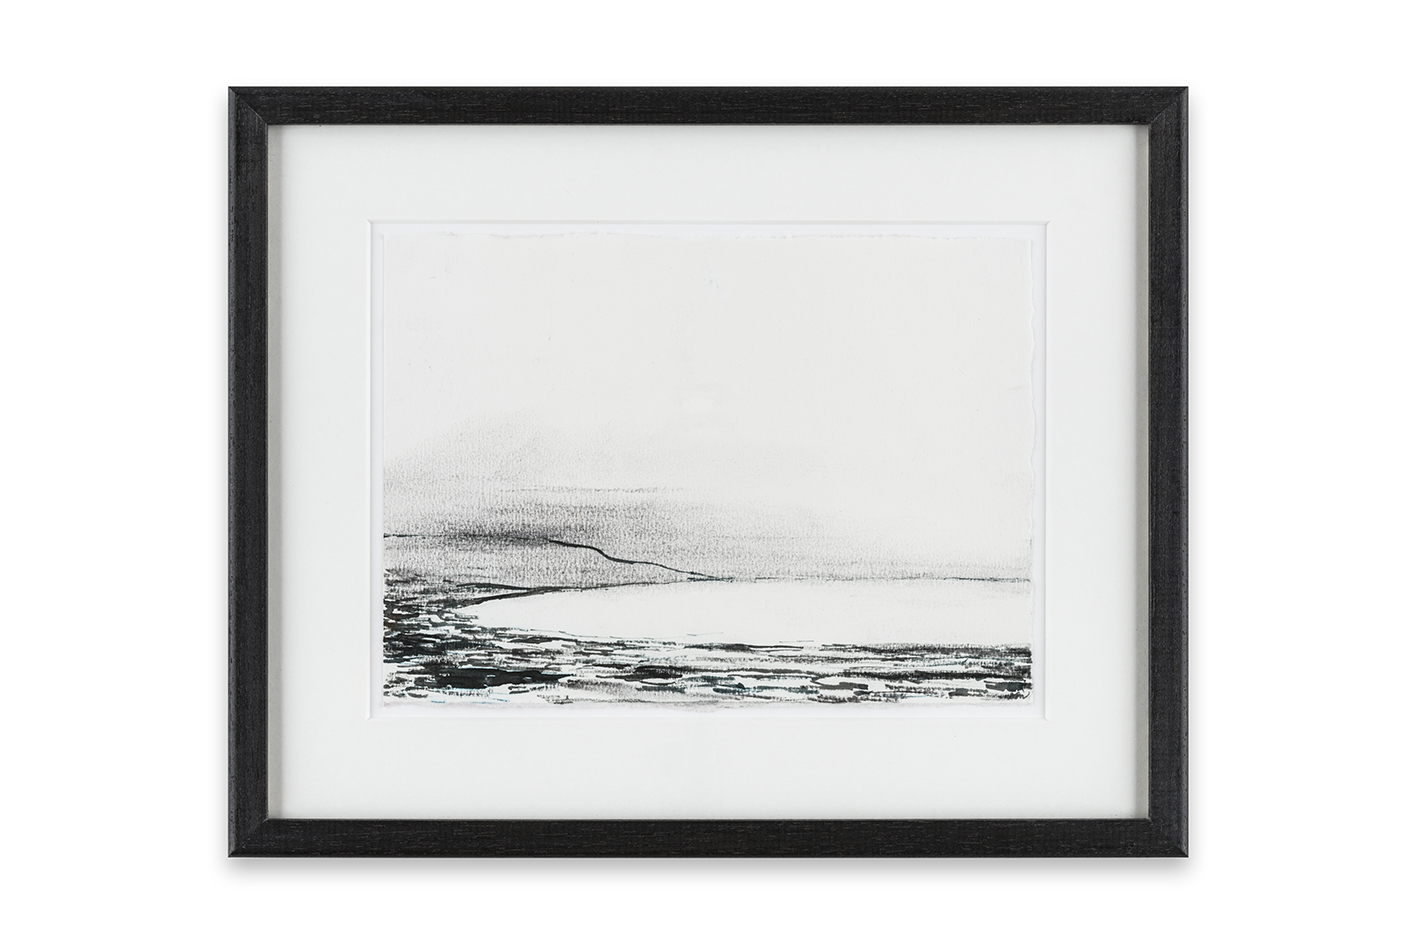 2 Bay, Time and Tide series, 15 x 21 cm, ink and charcoal on paper